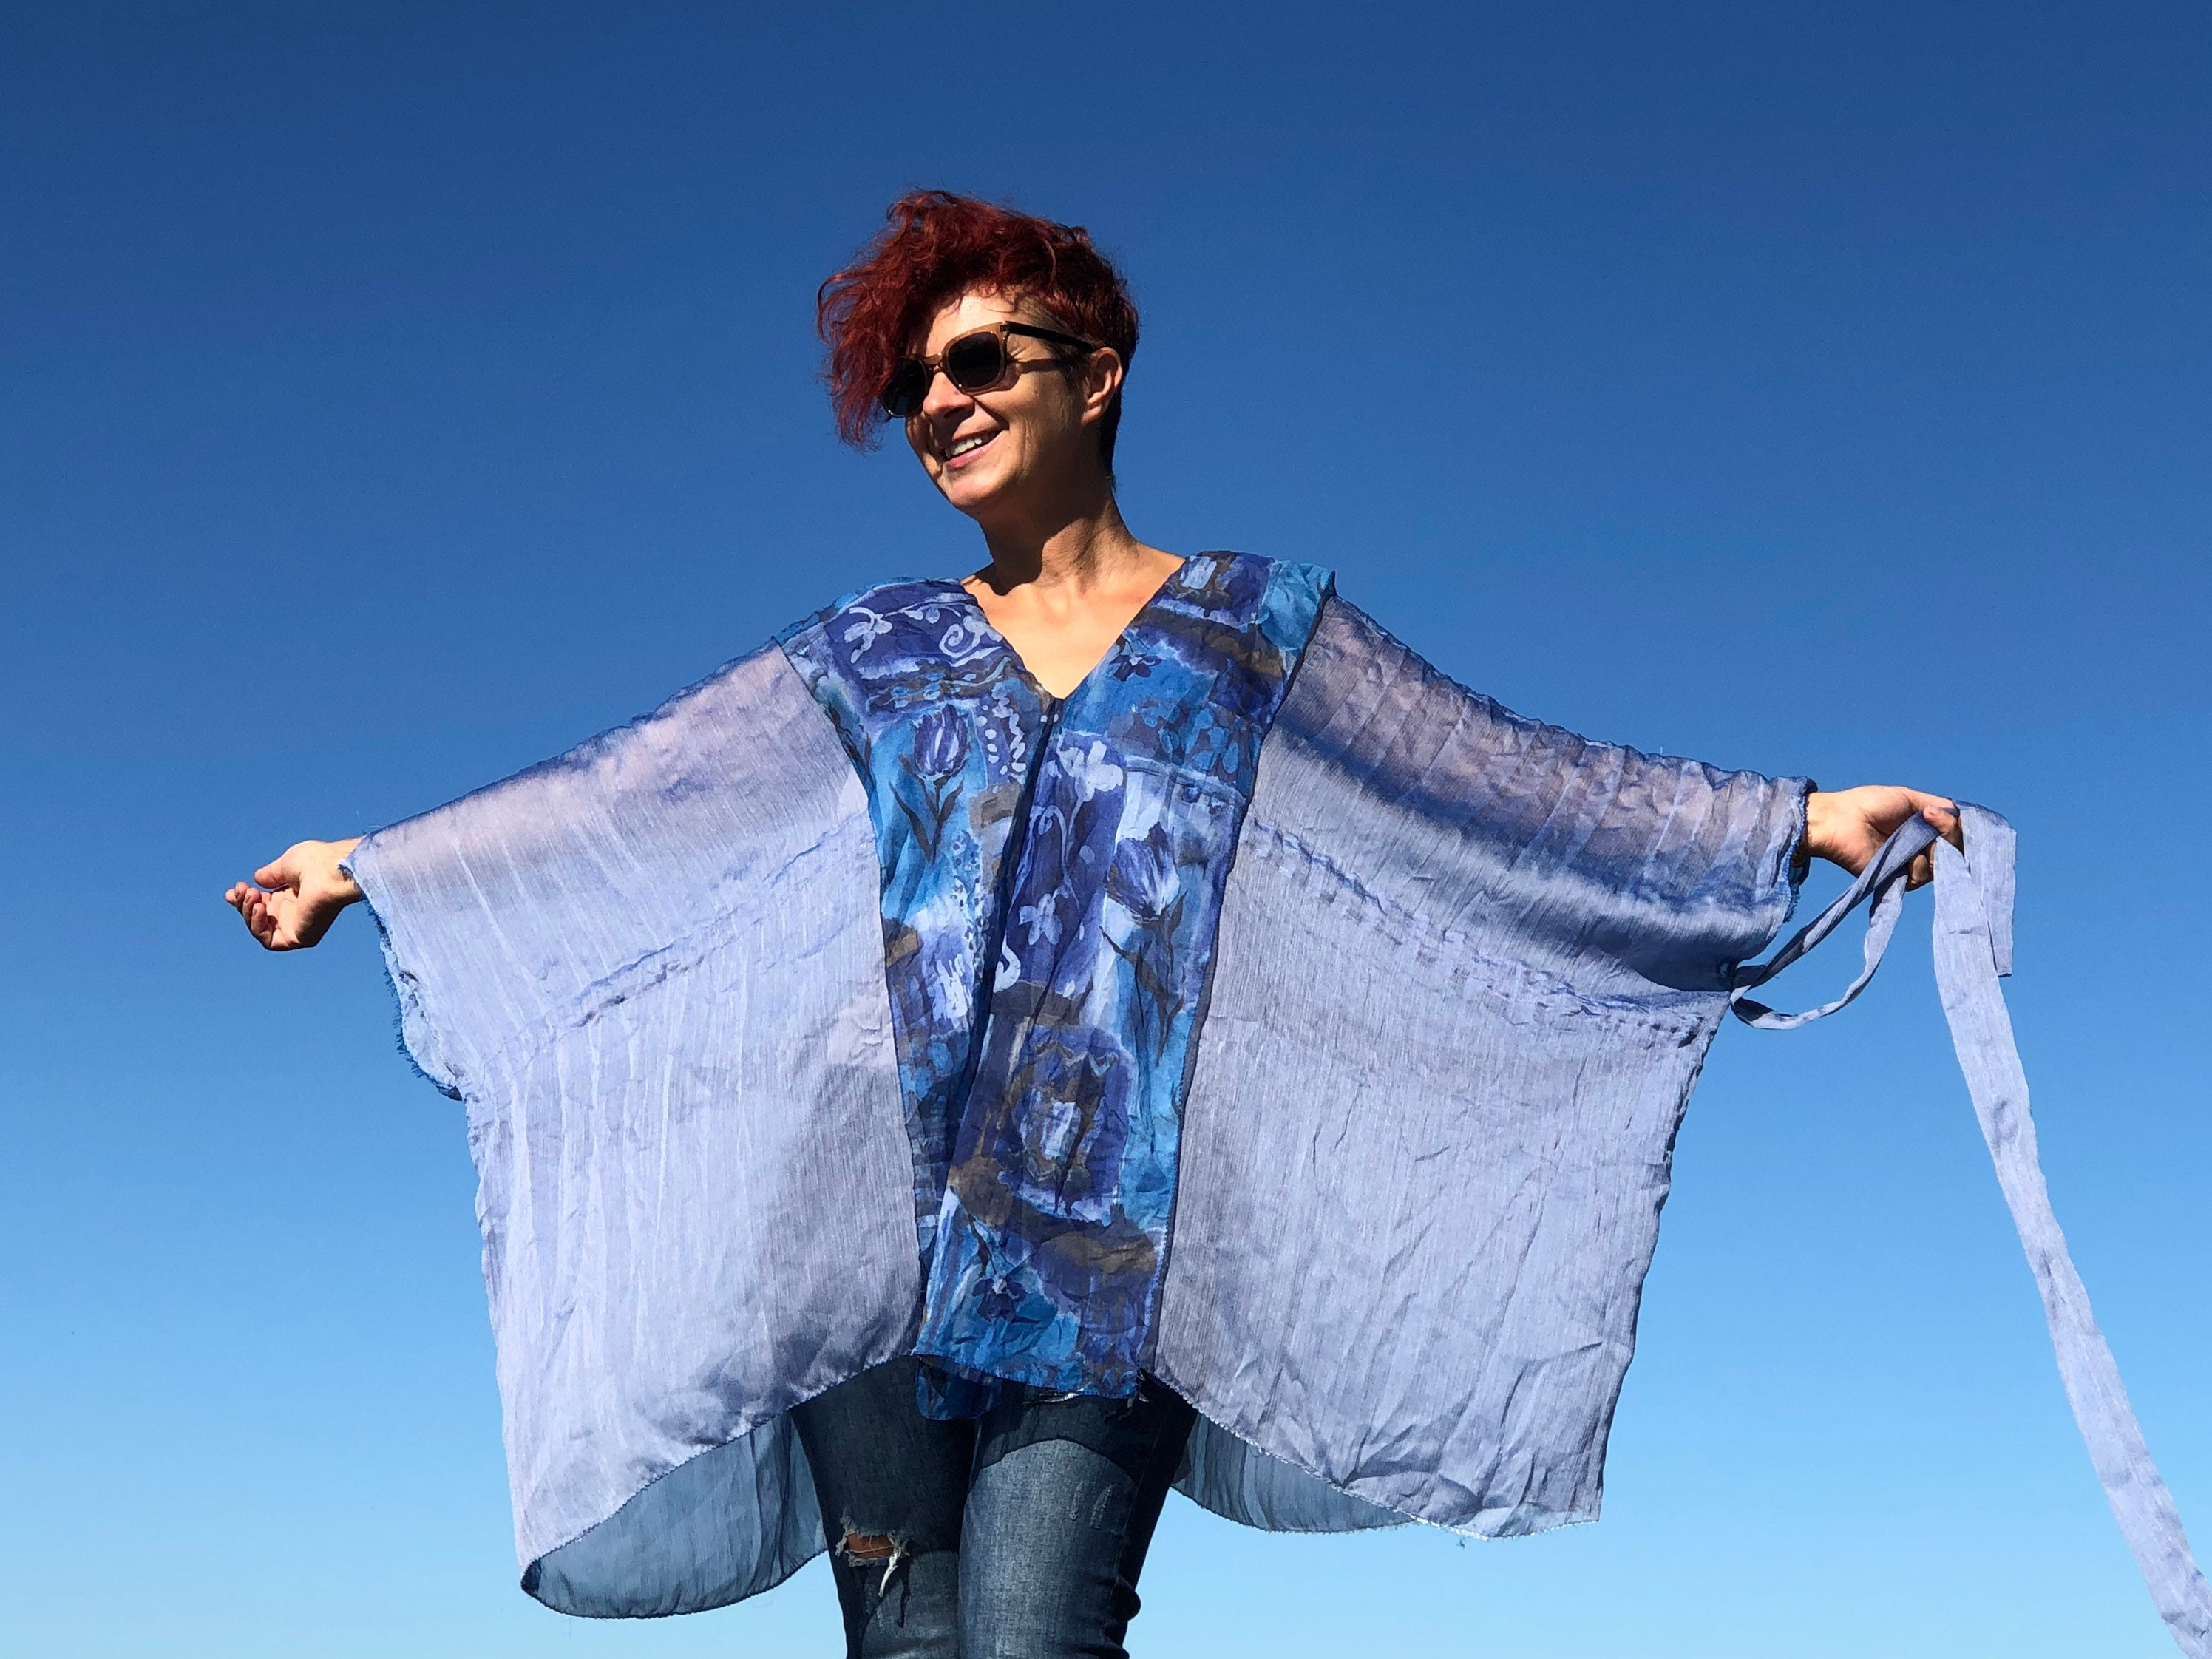 Vintage Scarf Styles -1920s to 1960s Blue Poncho Top Womans Plus Size Clothing Vintage Upcycled Scarf Silk Kimono Blouse Unique Zero Waste Sheer Lightweight Eco $106.00 AT vintagedancer.com